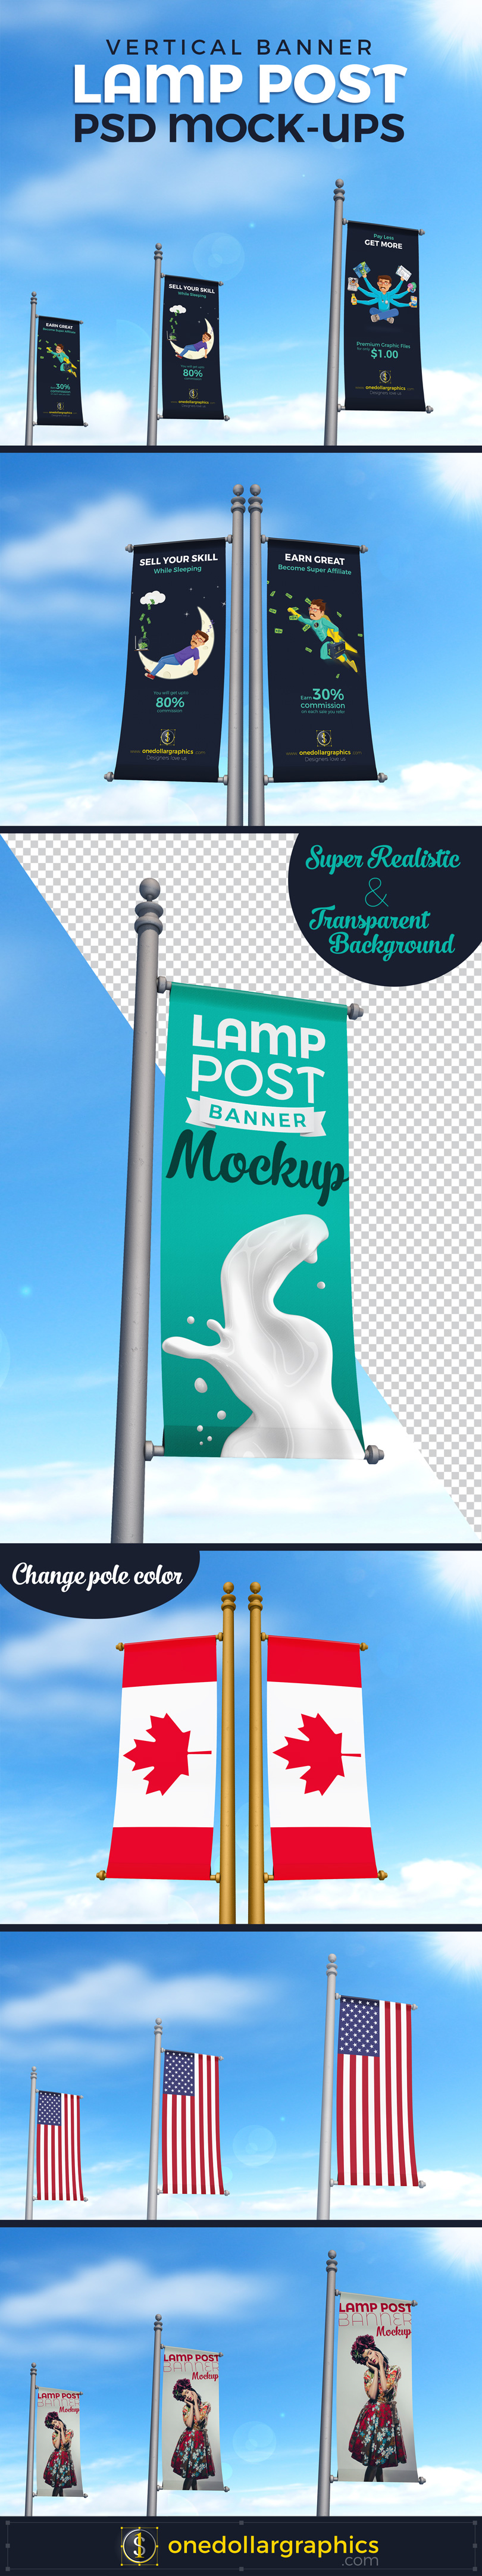 Realistic Lamp Post Banner PSD Mock-ups